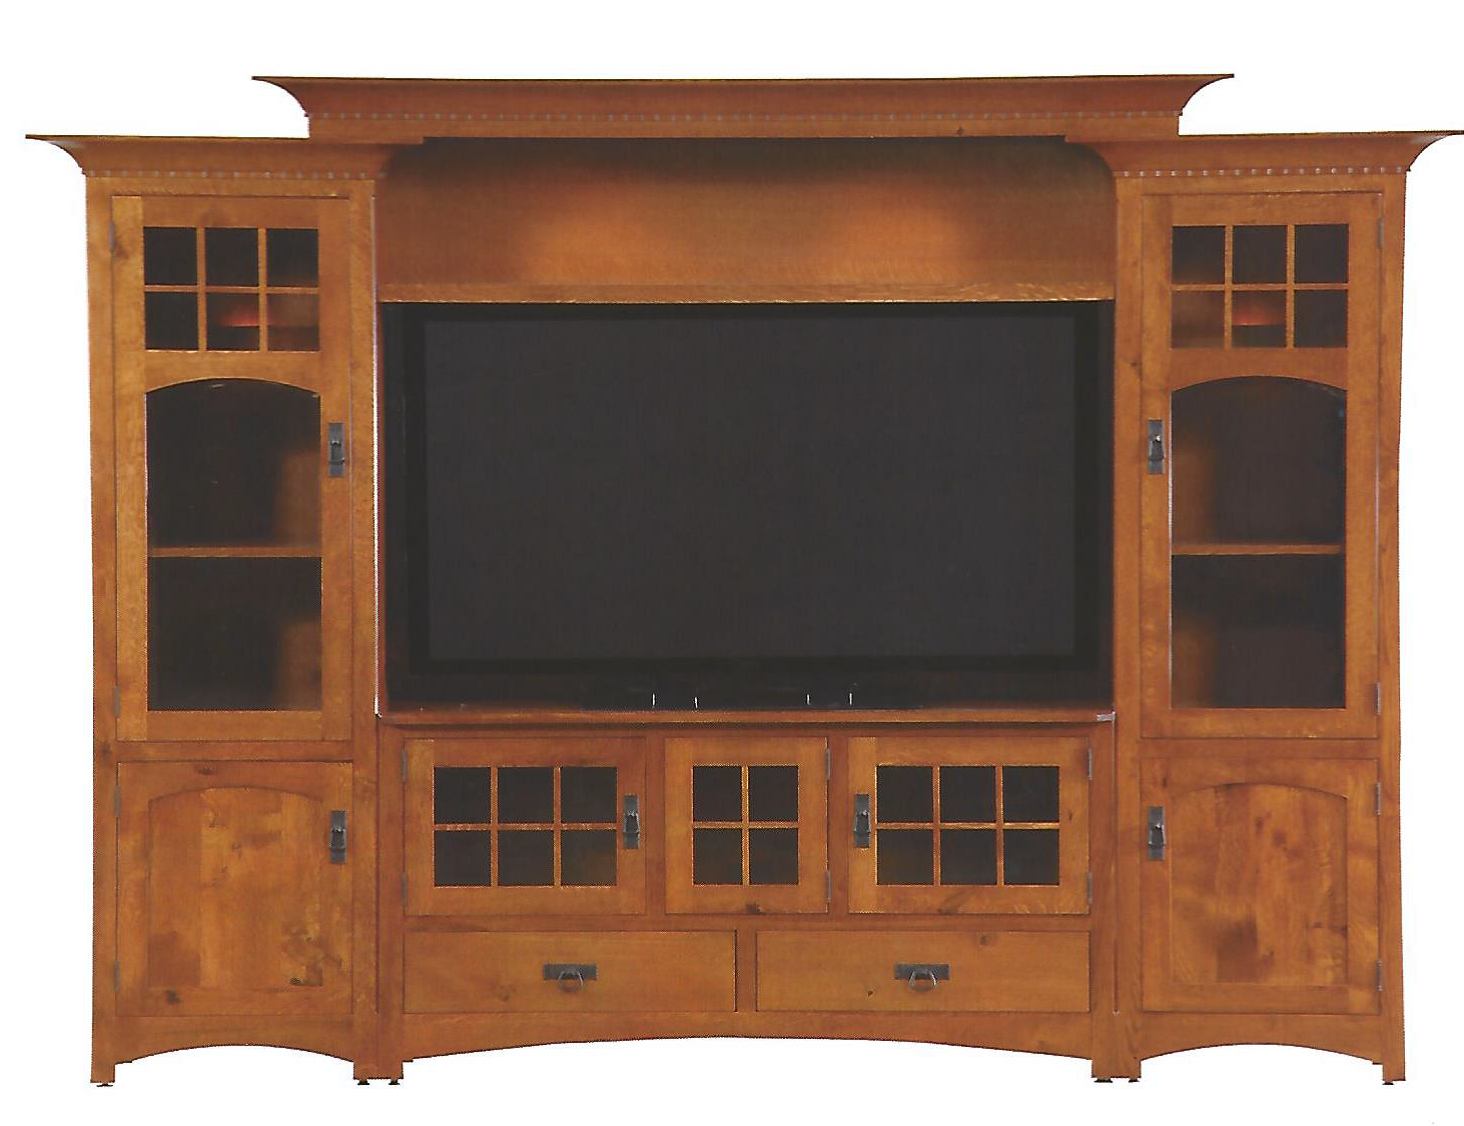 Handmade winchester bridge wall unit entertainment center in rustic quartersawn white oak by Wooden entertainment center furniture